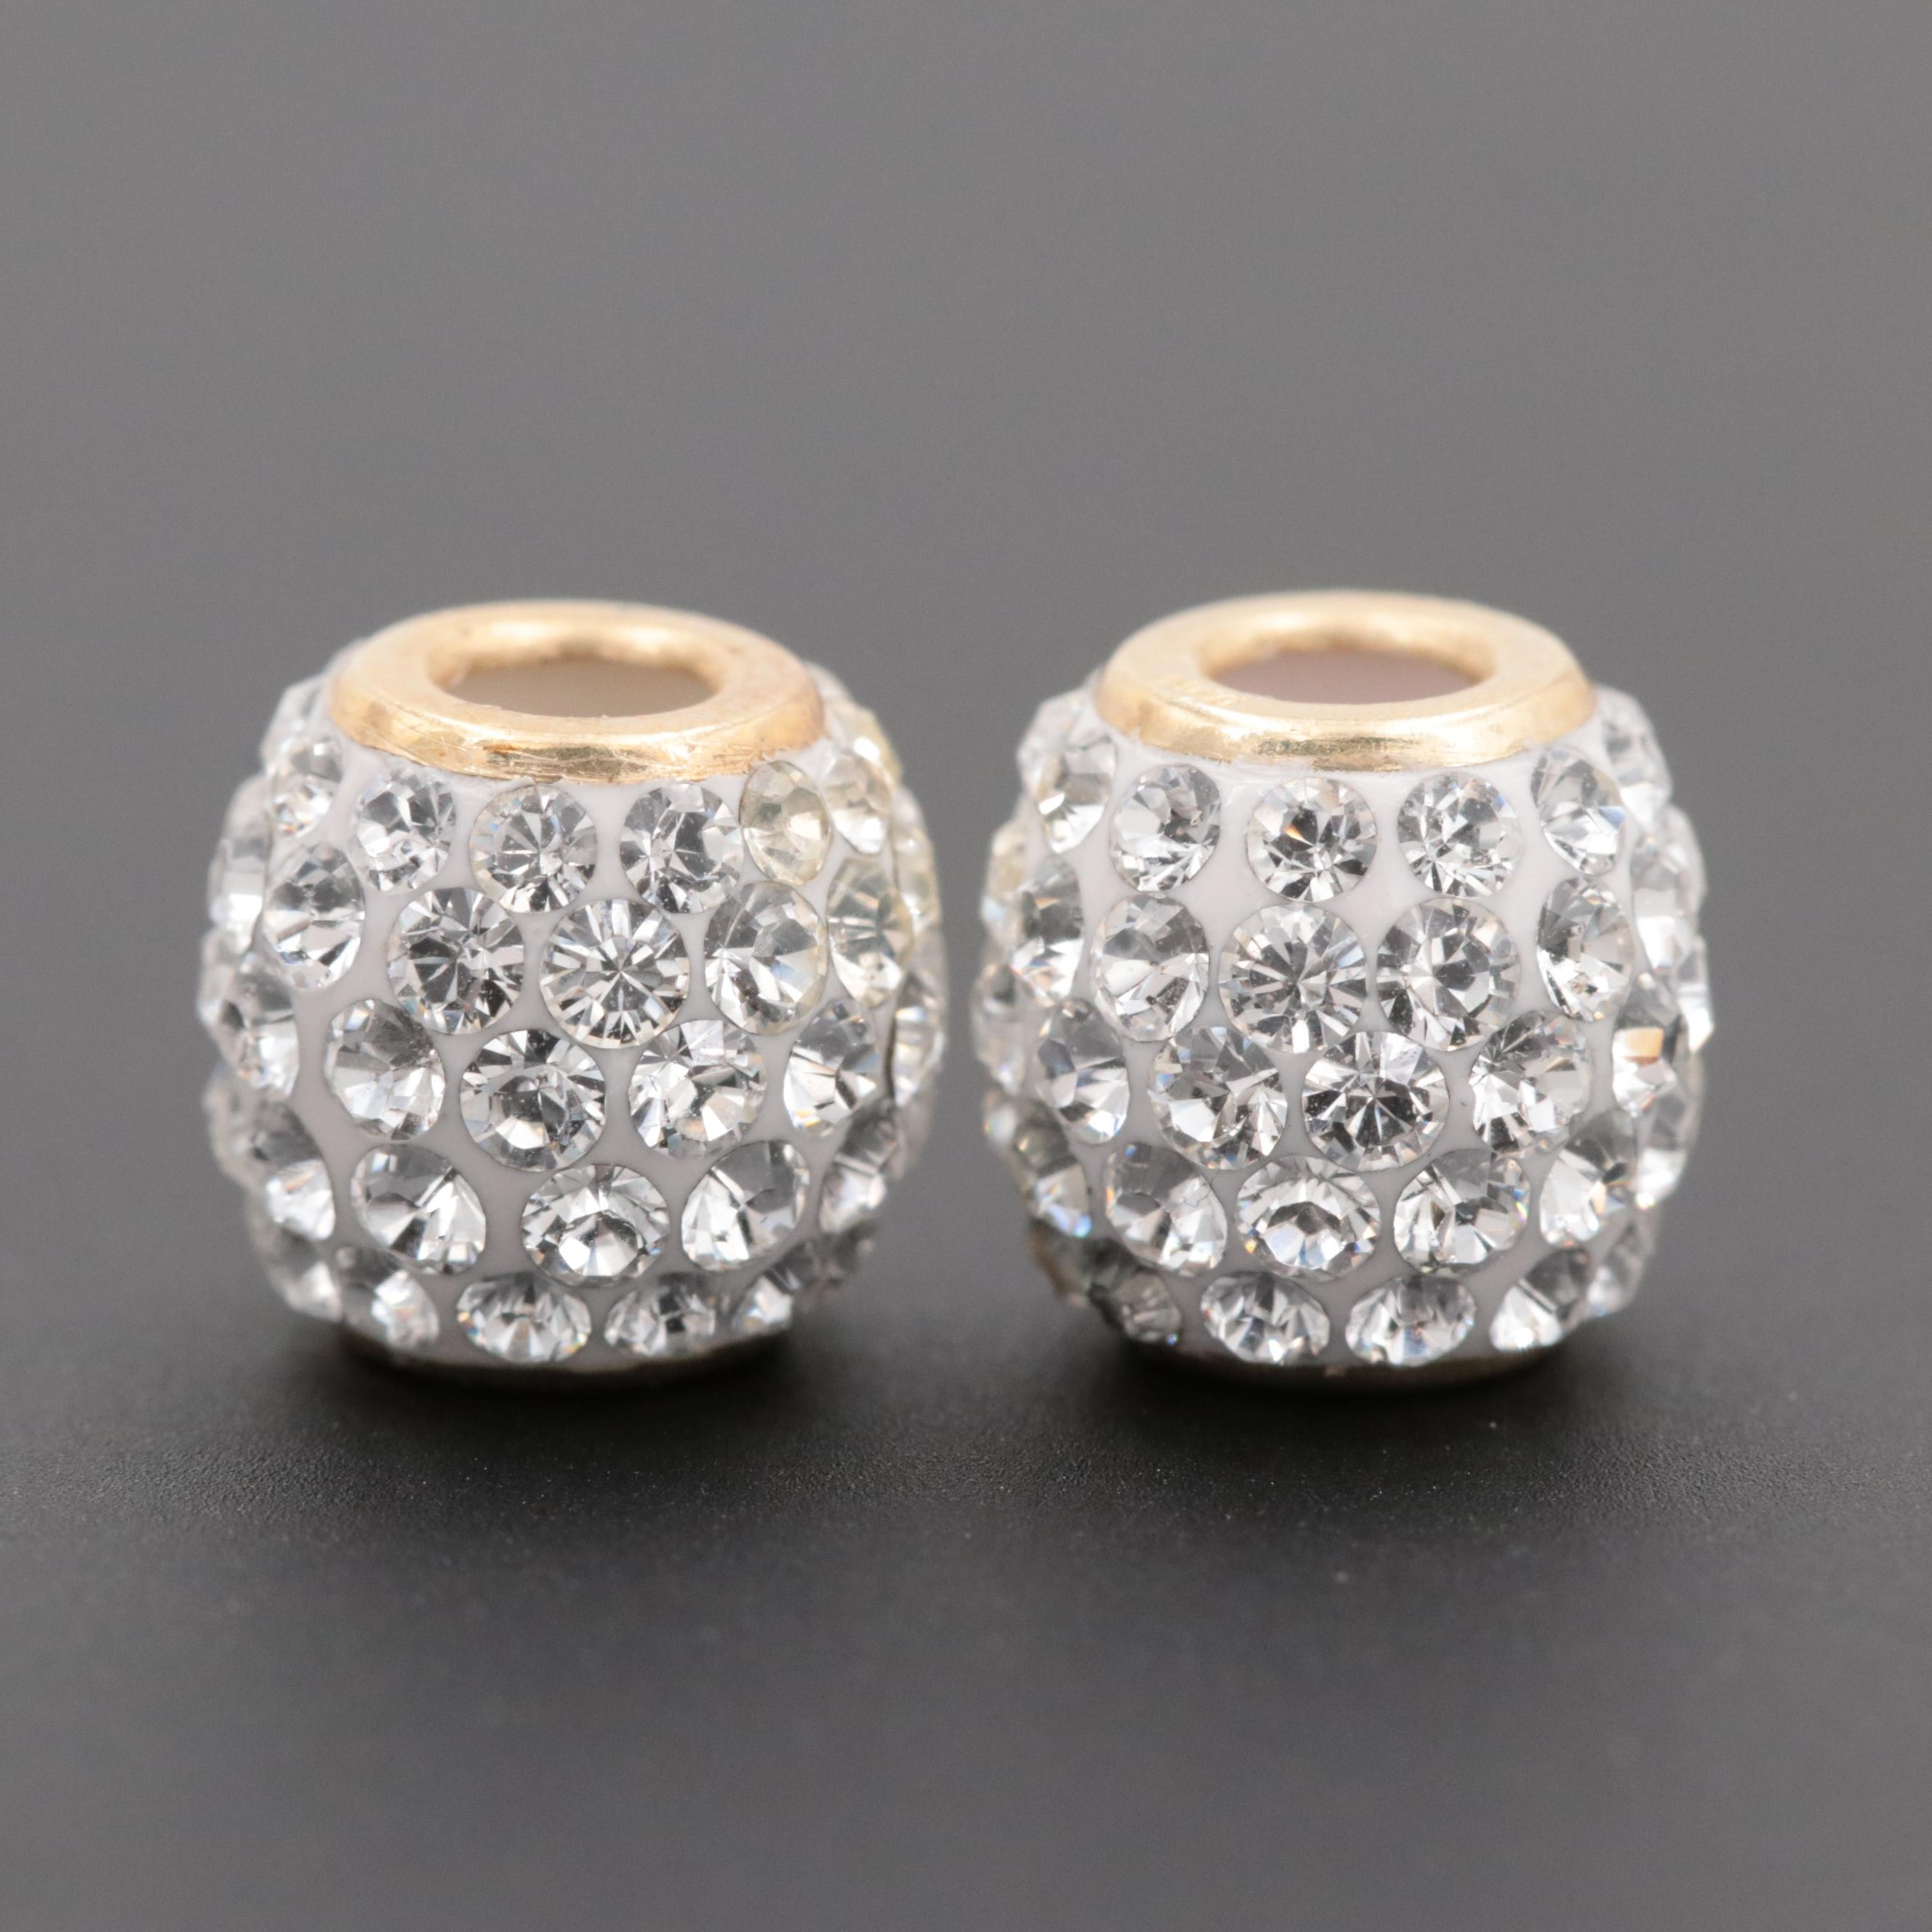 14K Yellow Gold Slide Bead Charms with Glass Accents